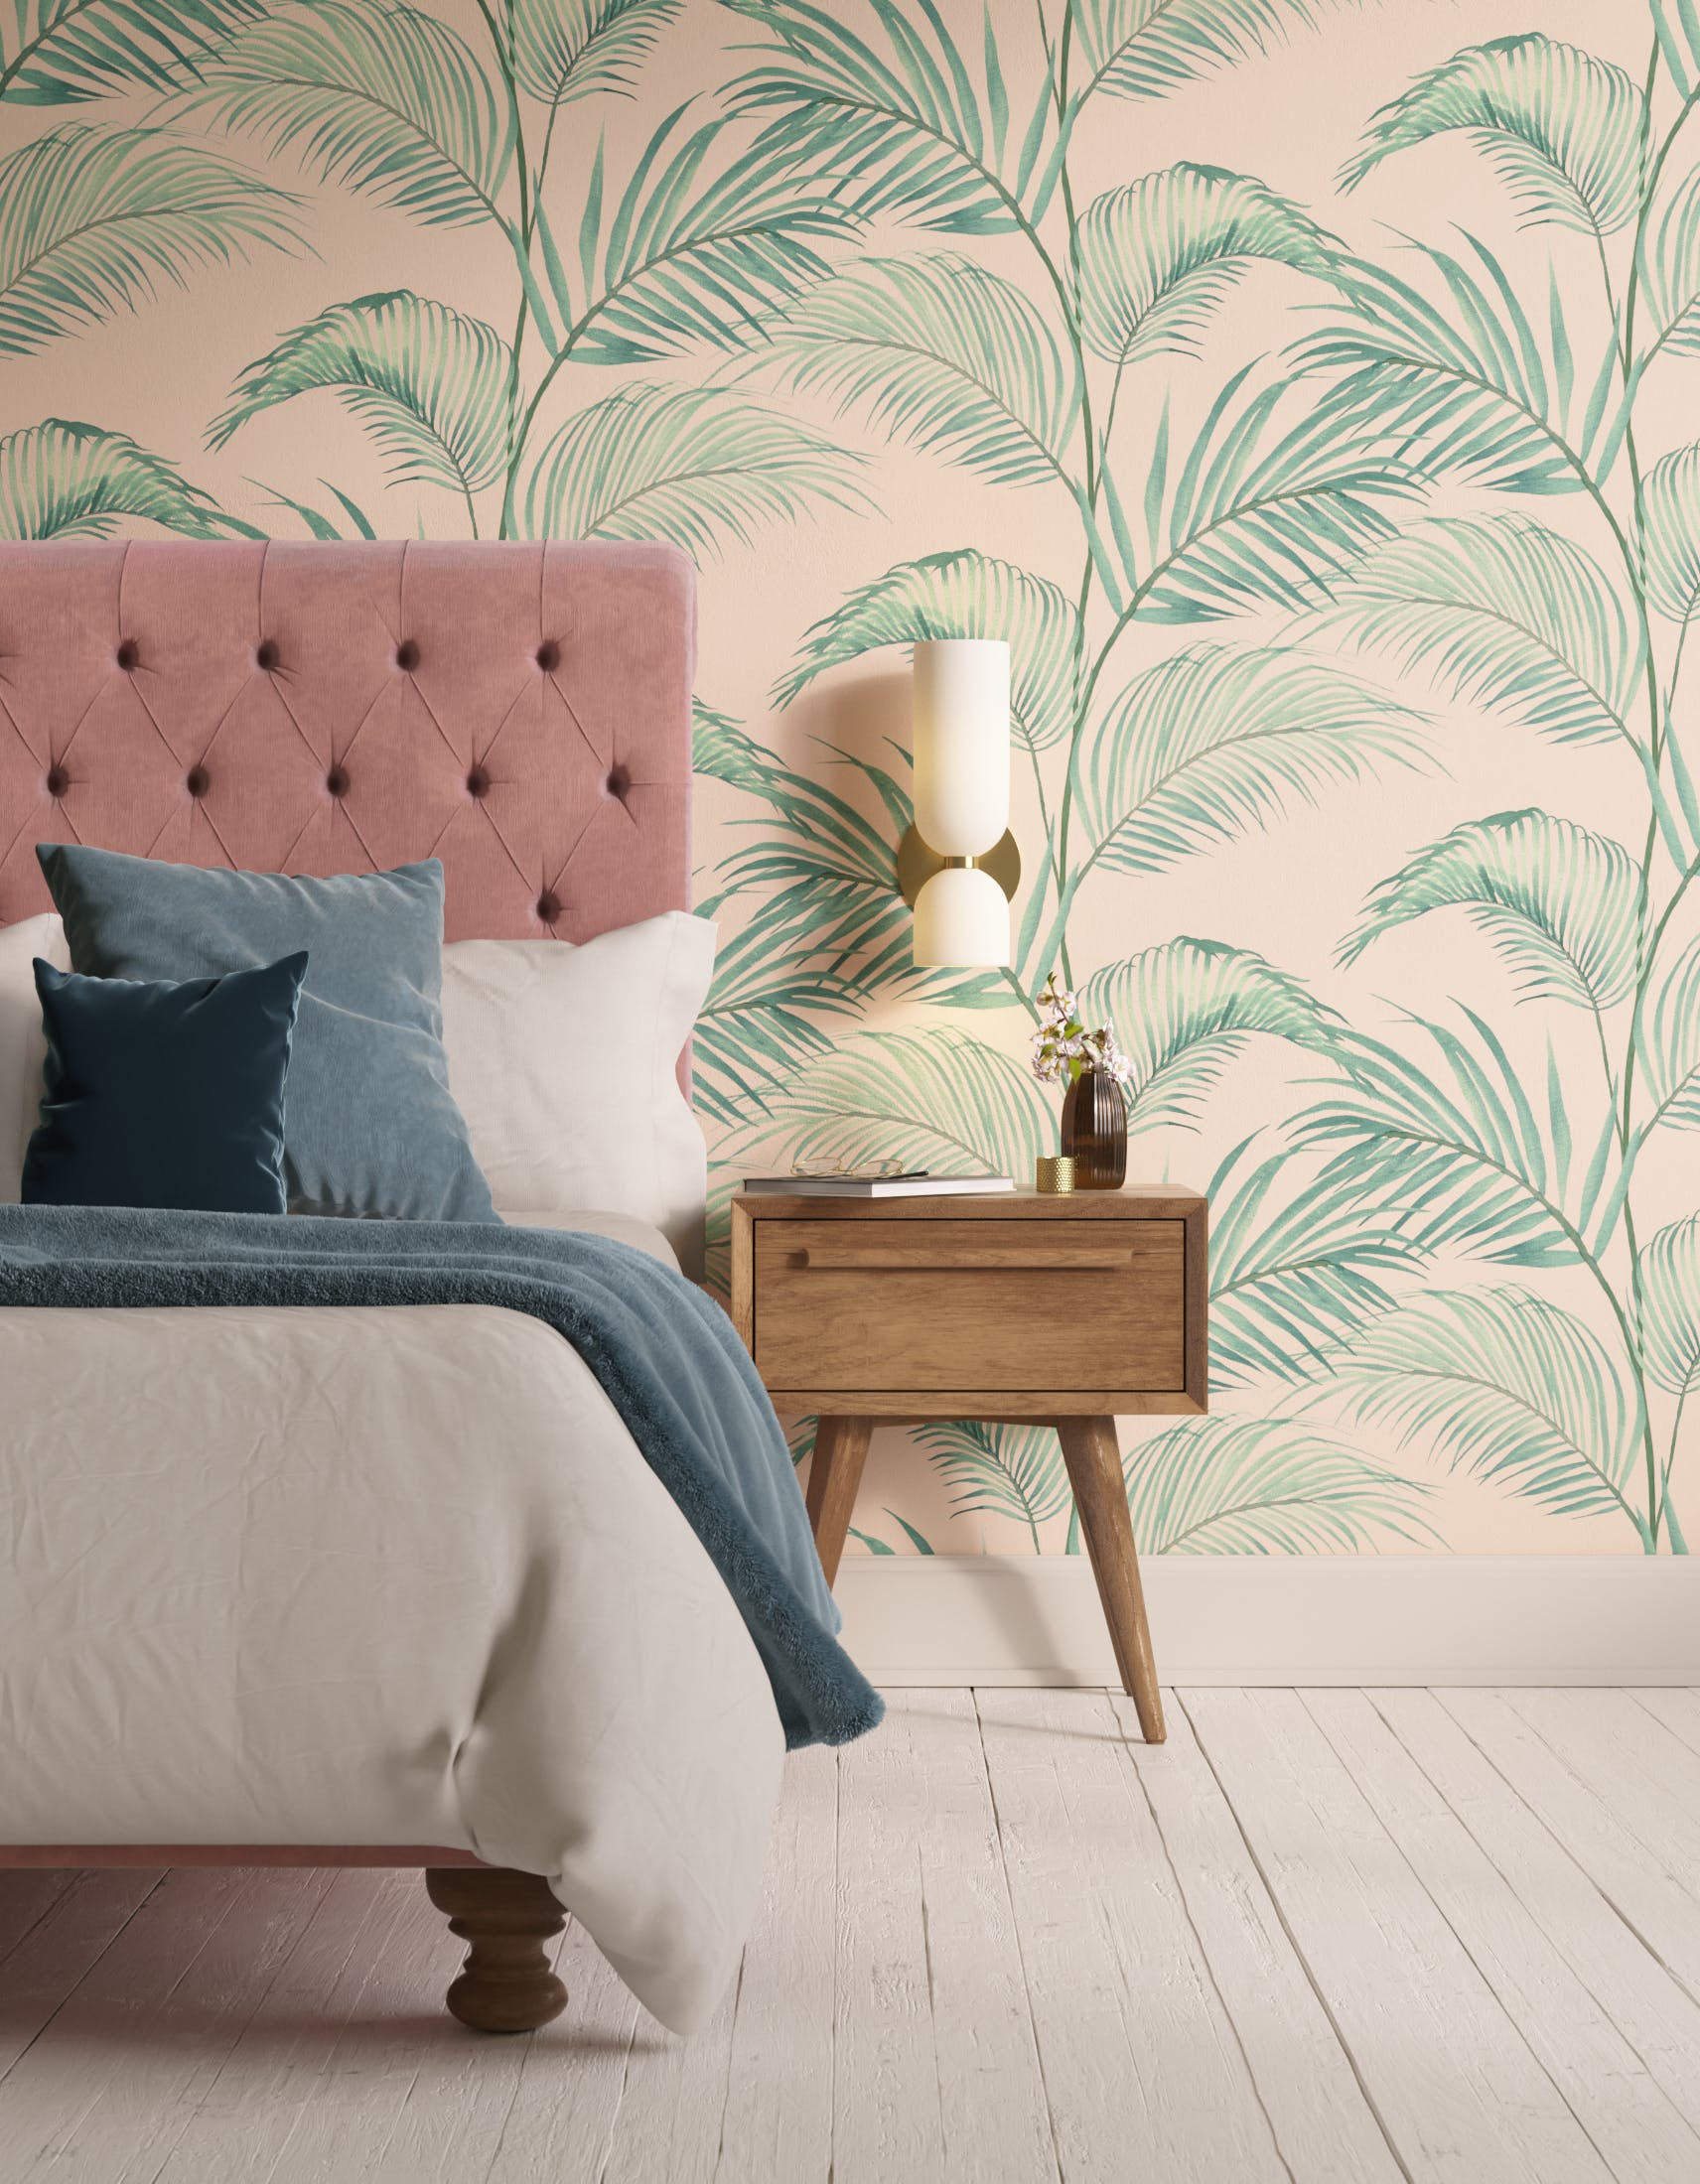 Bedroom decorated with Lick x Belinda Bayley Jungle 02 pink and green palm leaf wallpaper